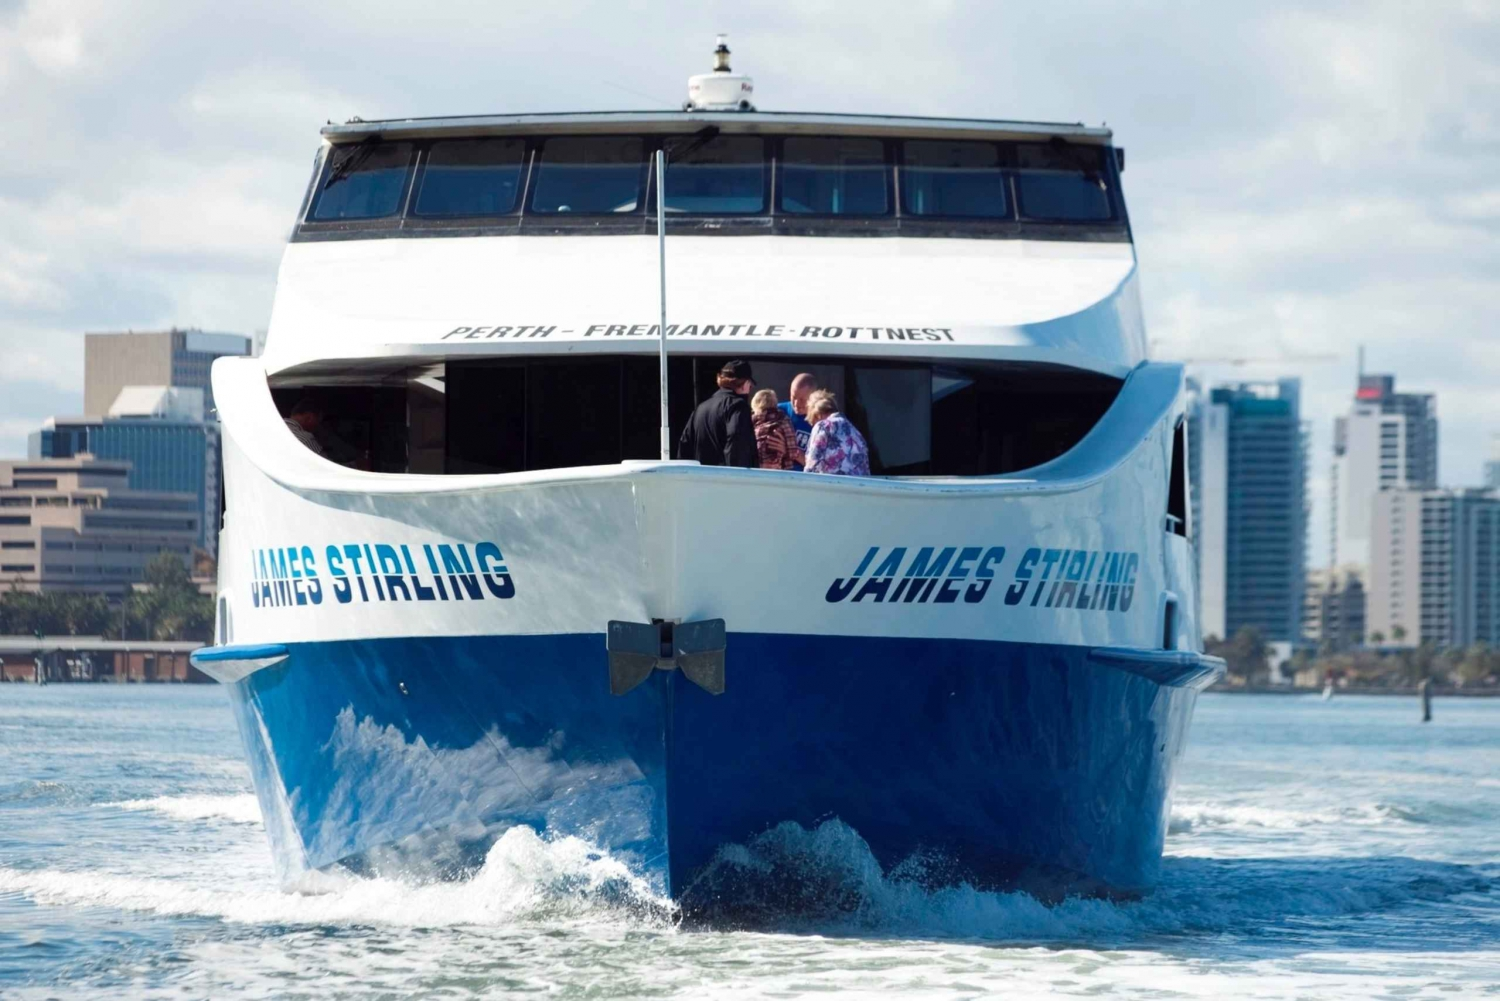 Swan River Round-Trip Cruise from Perth or Fremantle